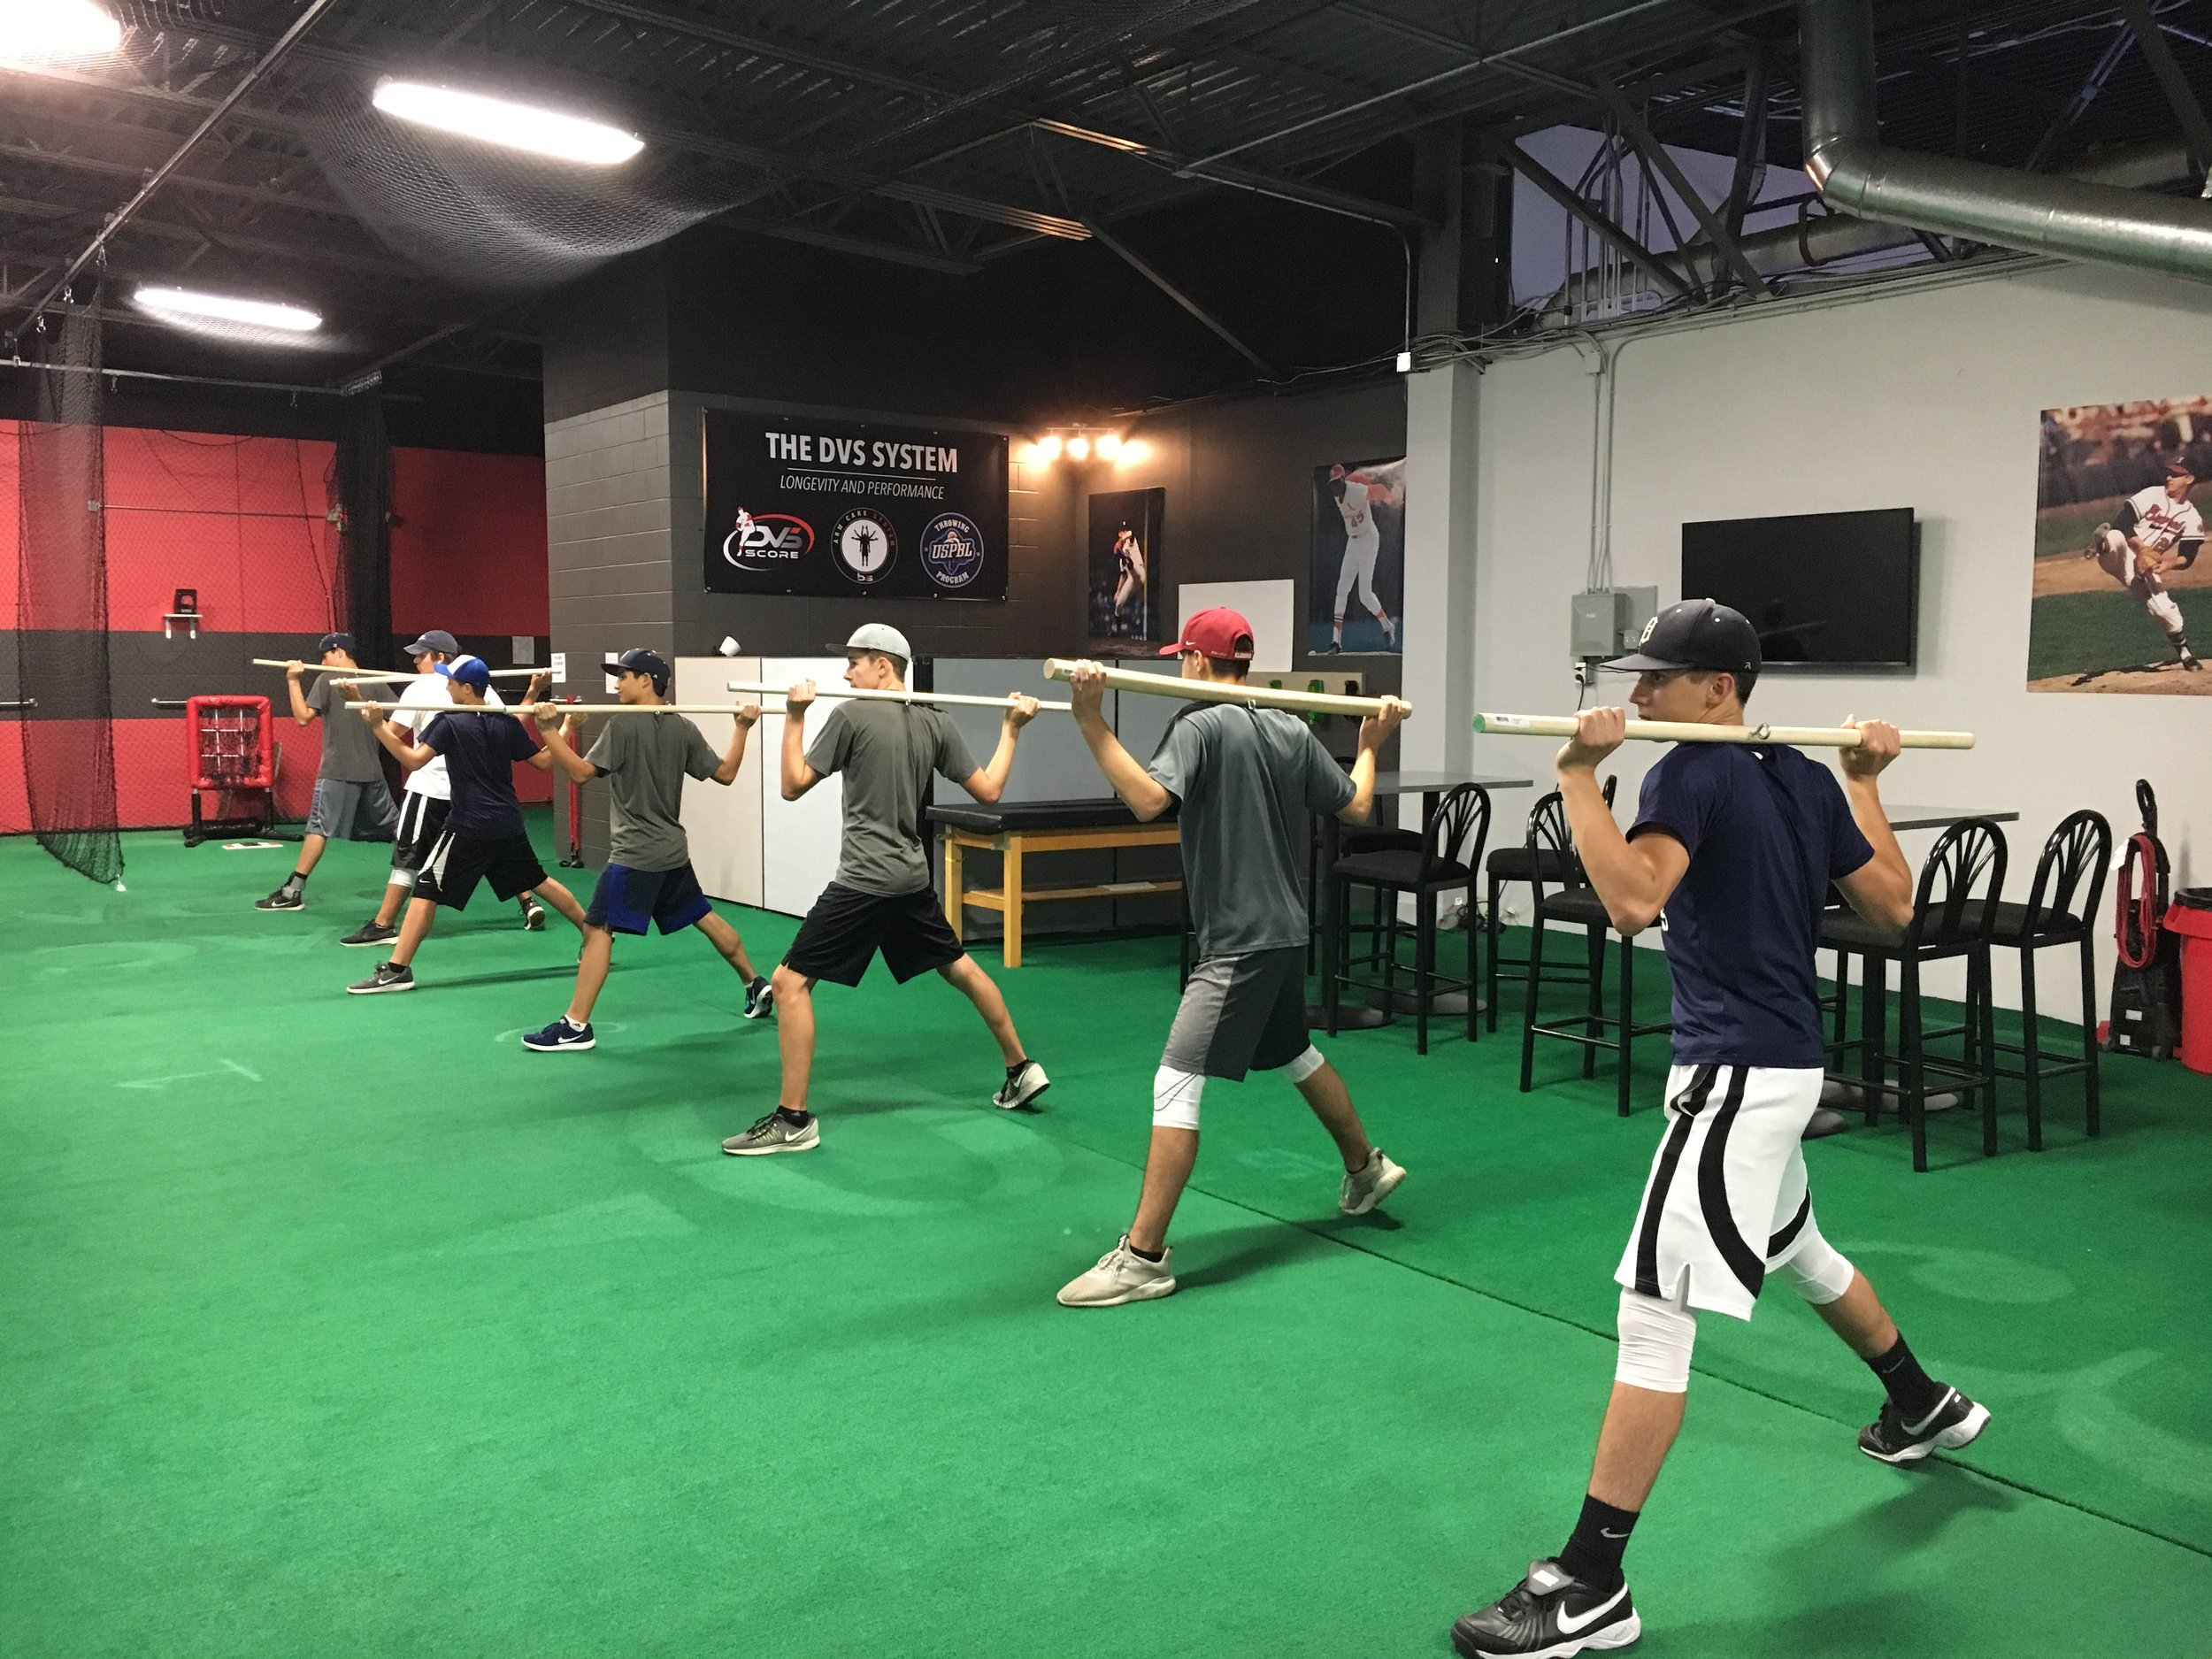 Team Training - Group / Team training combine movement improvement exercises with core exercises and our DVS Arm Care System. The movement portion of our classes touch on all the phases of the pitching delivery with each class having an emphasis on one core component.